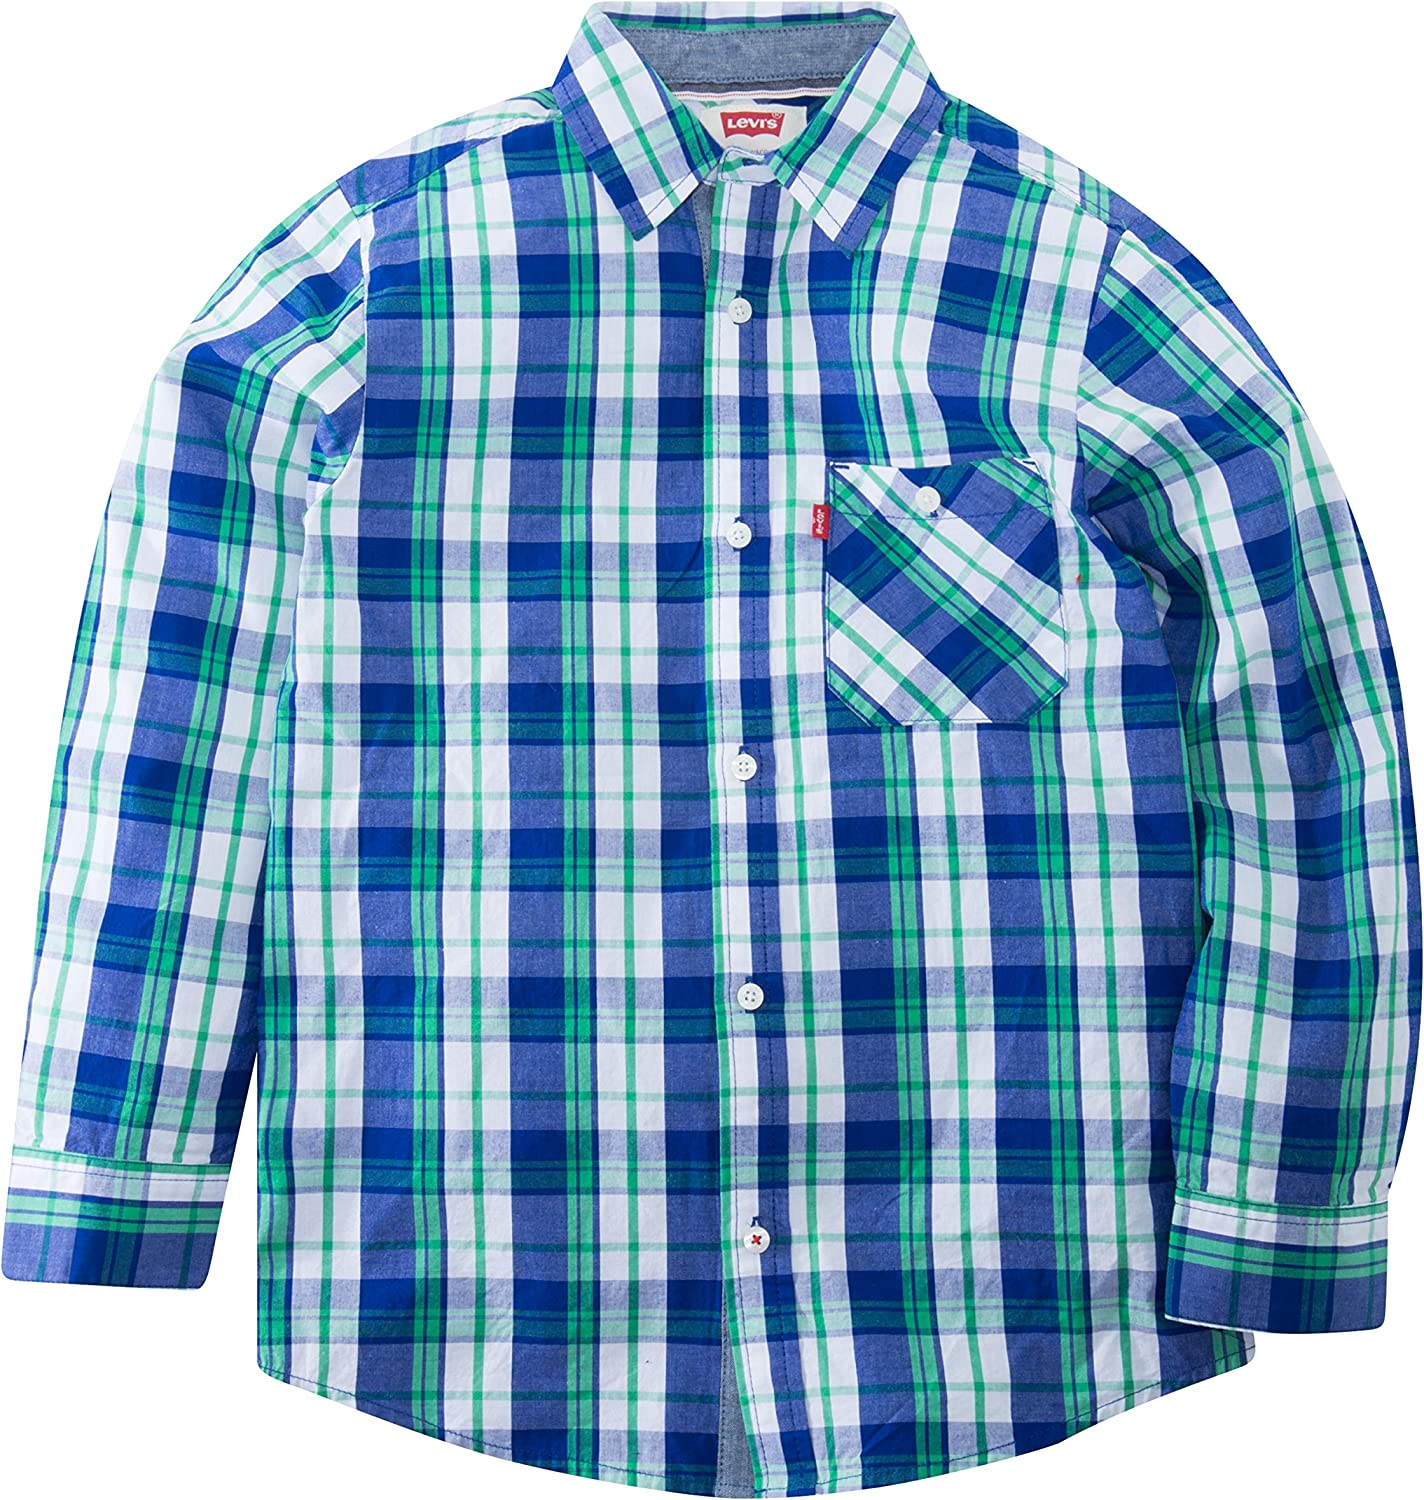 Levis Long Sleeve One Pocket Shirt Camisa con Cuello Abotonado para Niños: Amazon.es: Ropa y accesorios